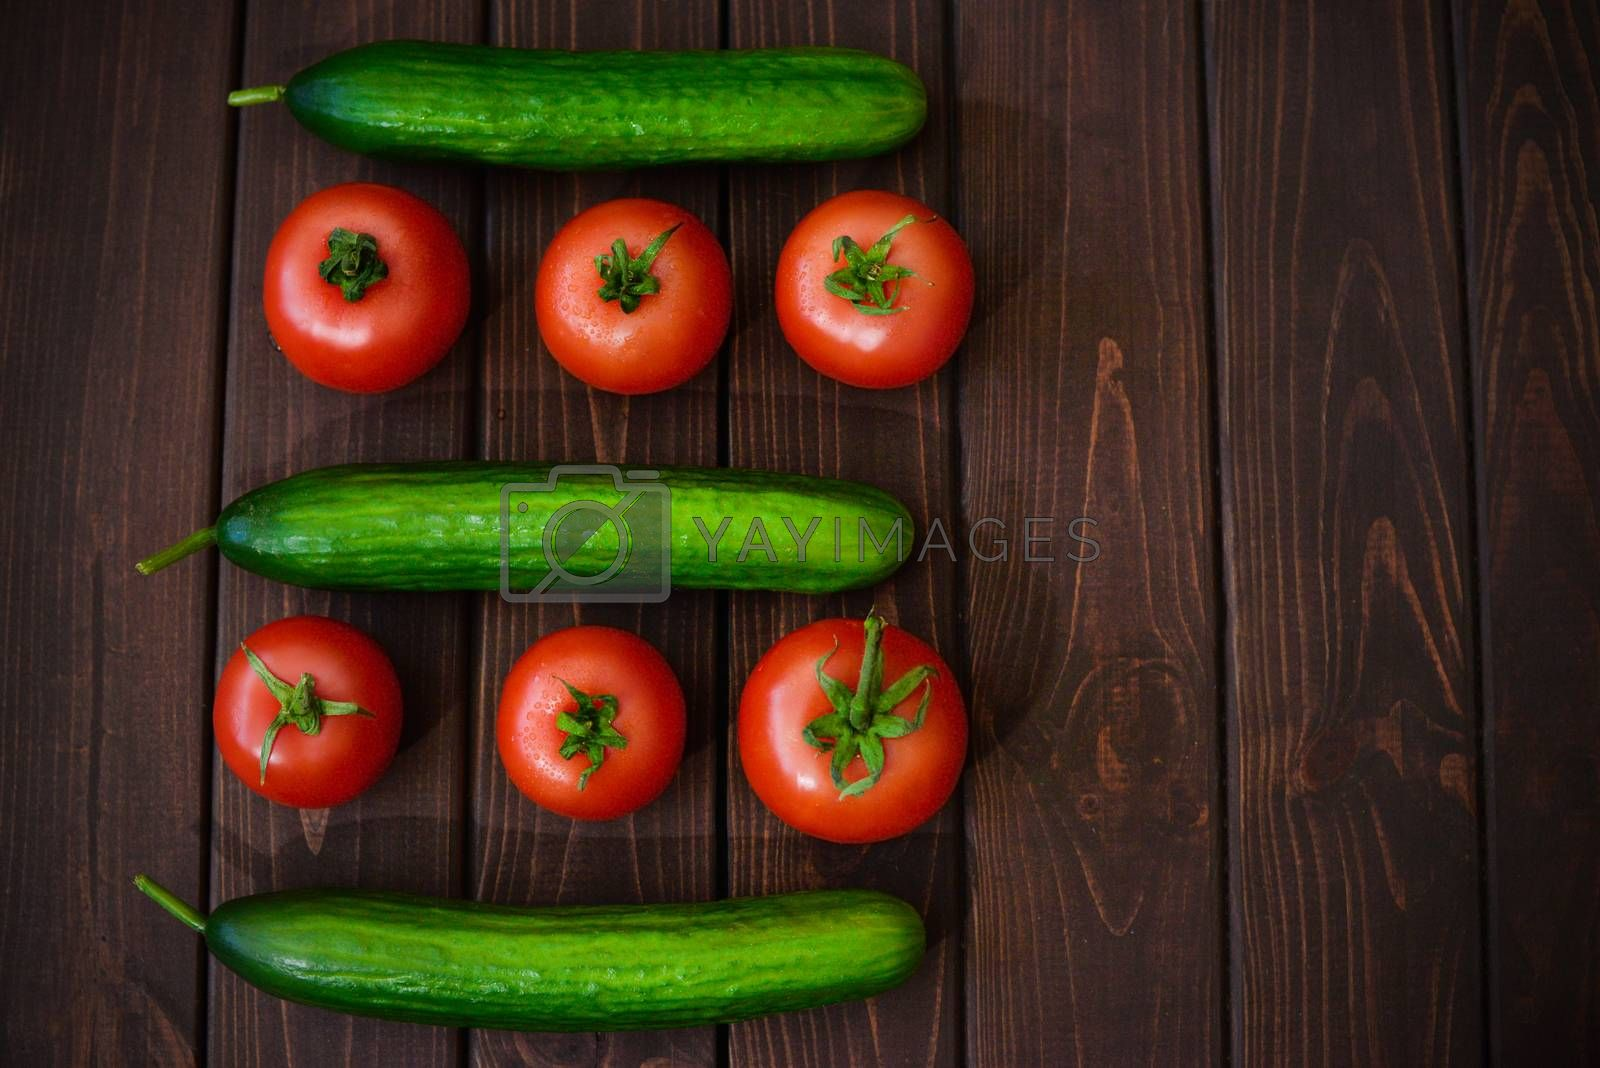 Tomatoes and cucumbers, the best traditional vegetables with low caloric content for ease and health of your organism.